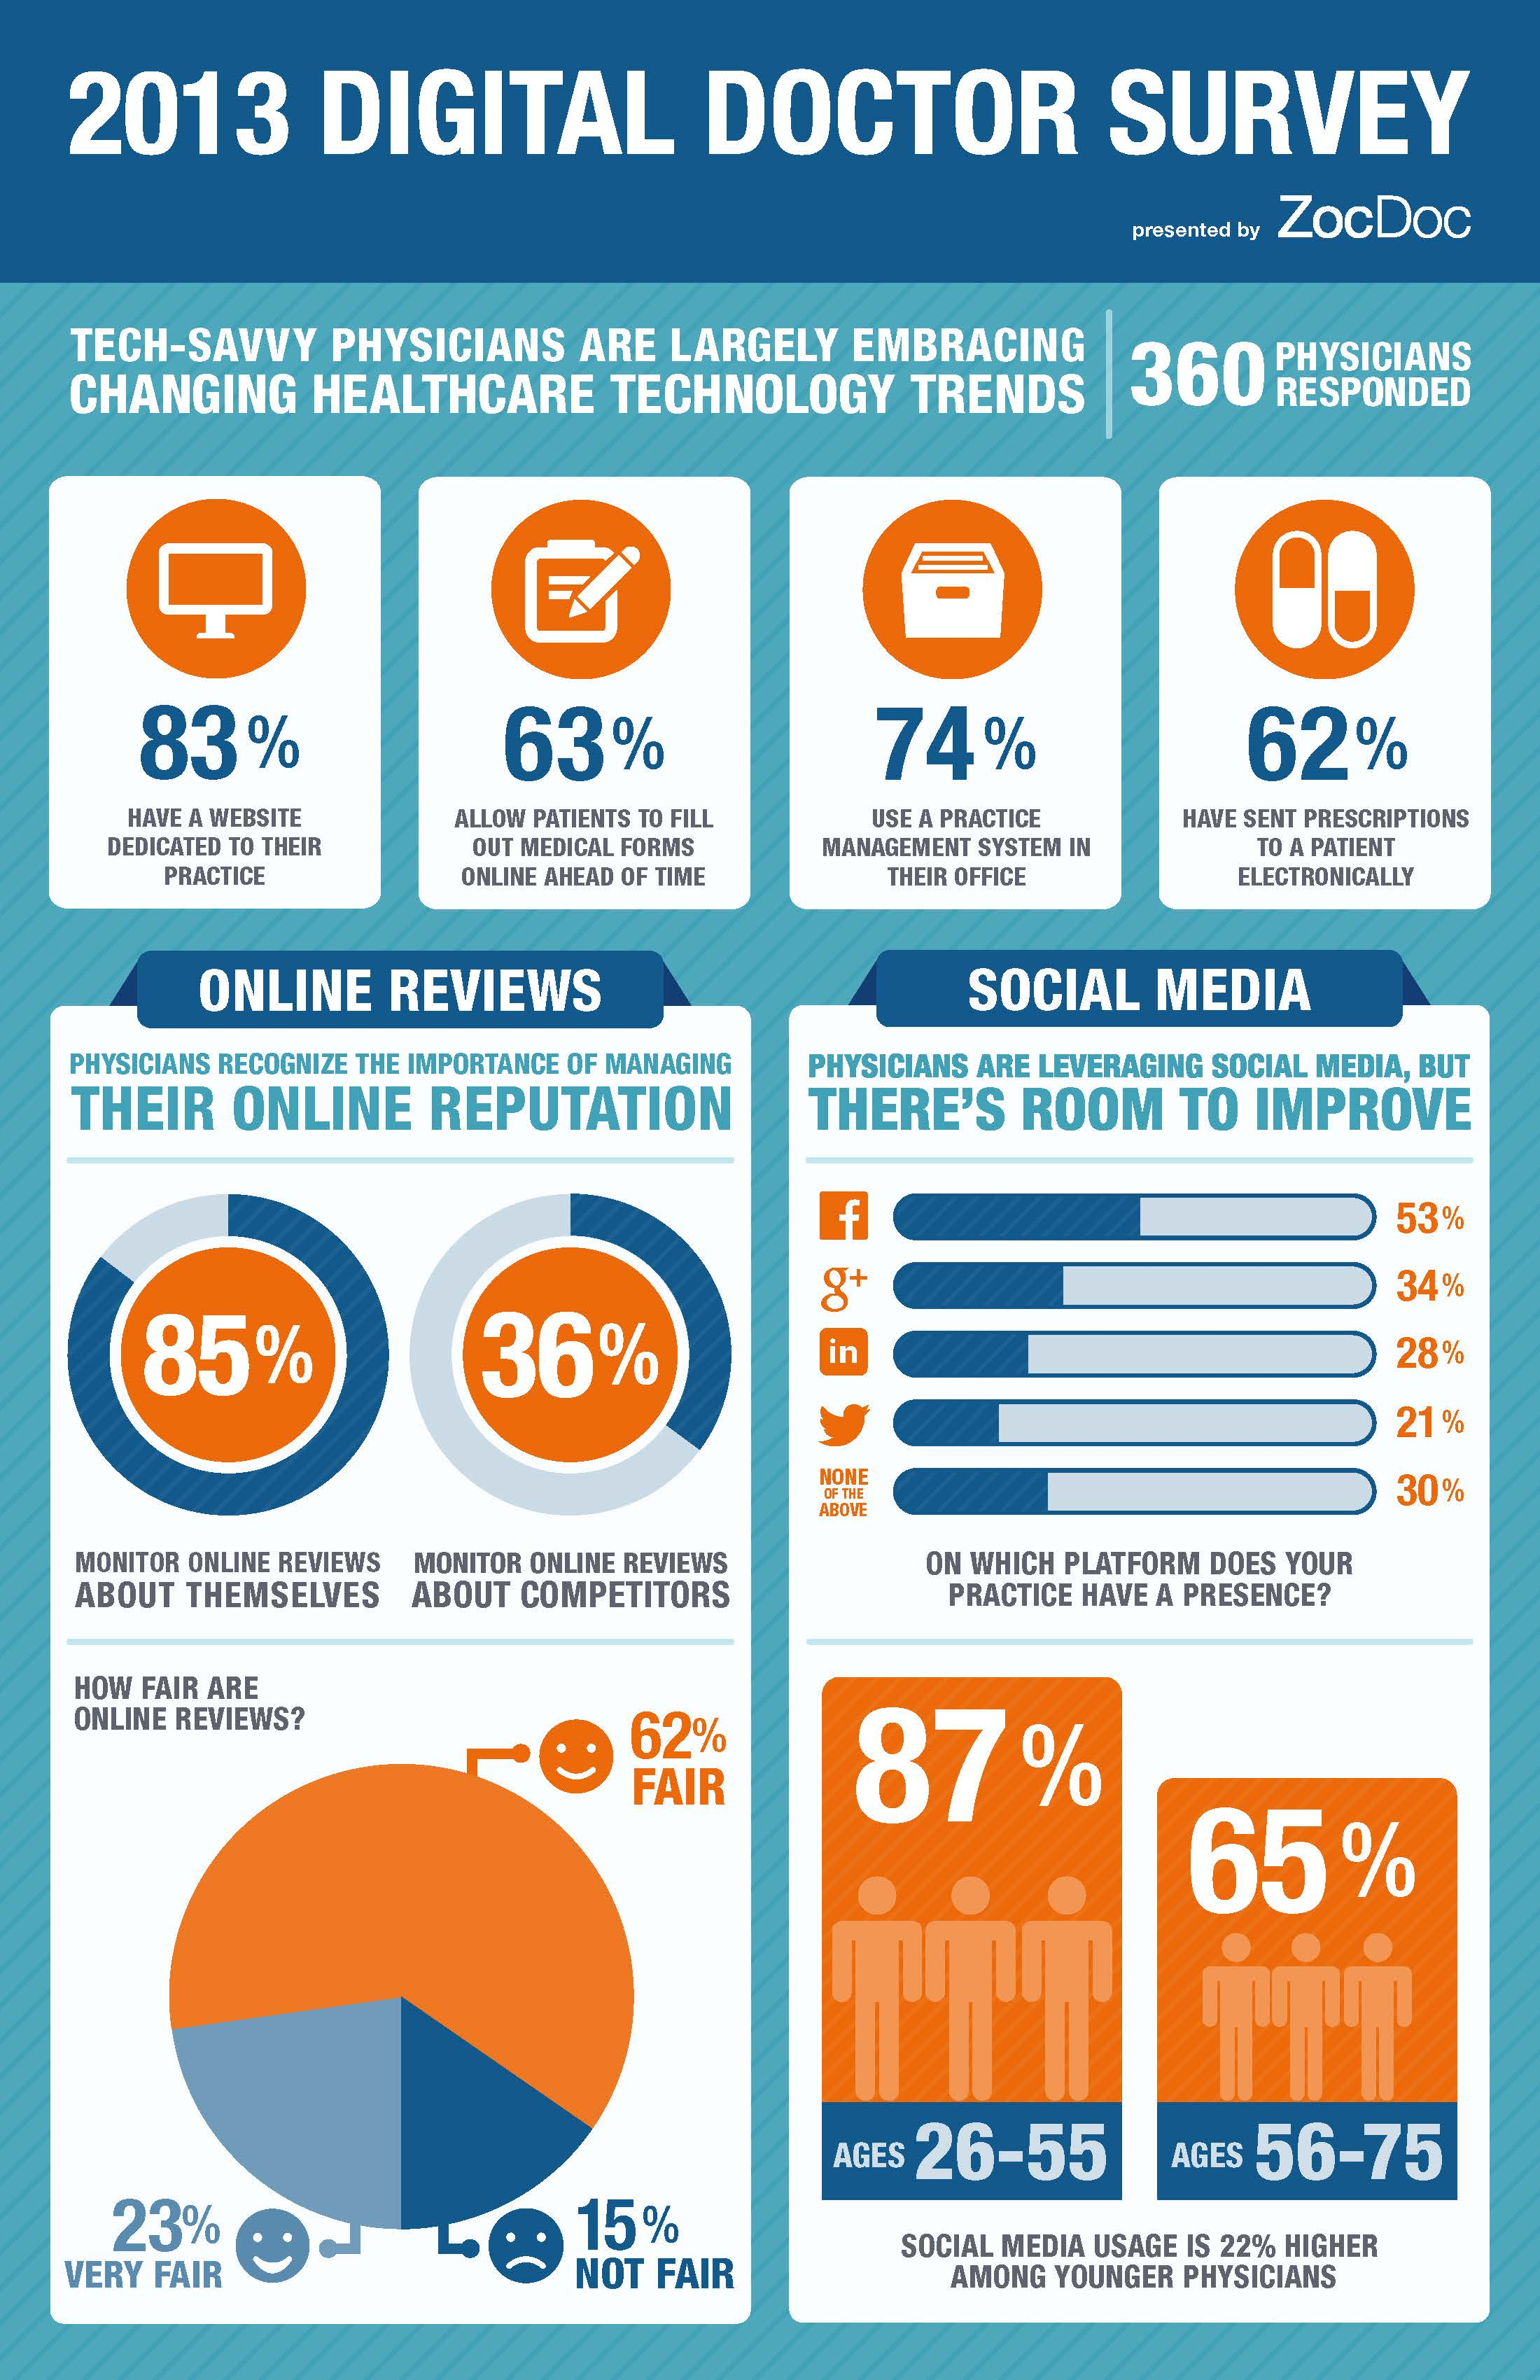 2013-digital-doctor-survey-results_5256e8a0c7061